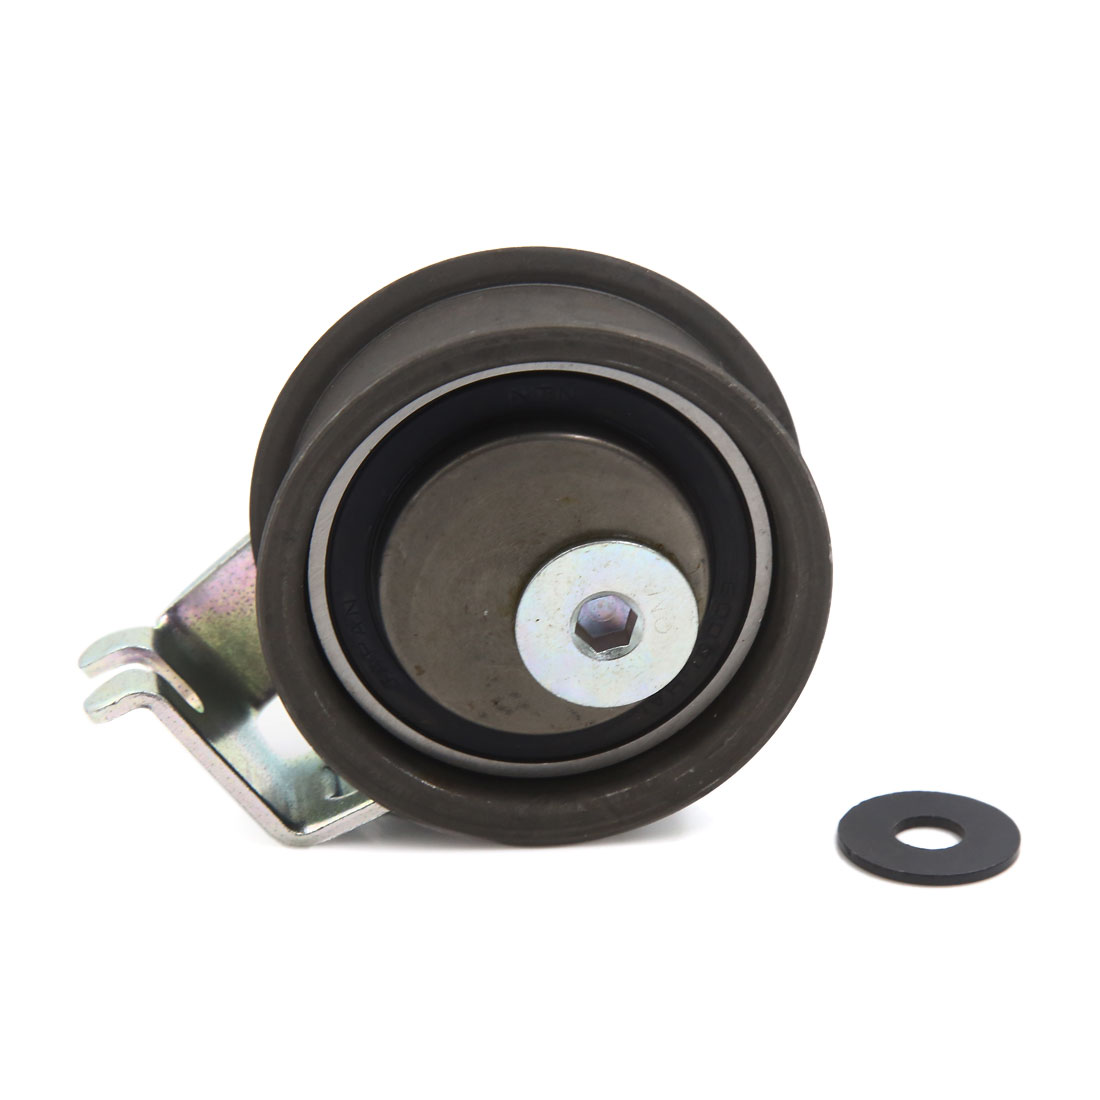 Universal Car Vehicle Engine Belt Tensioner Pulley Repair Accessory Black